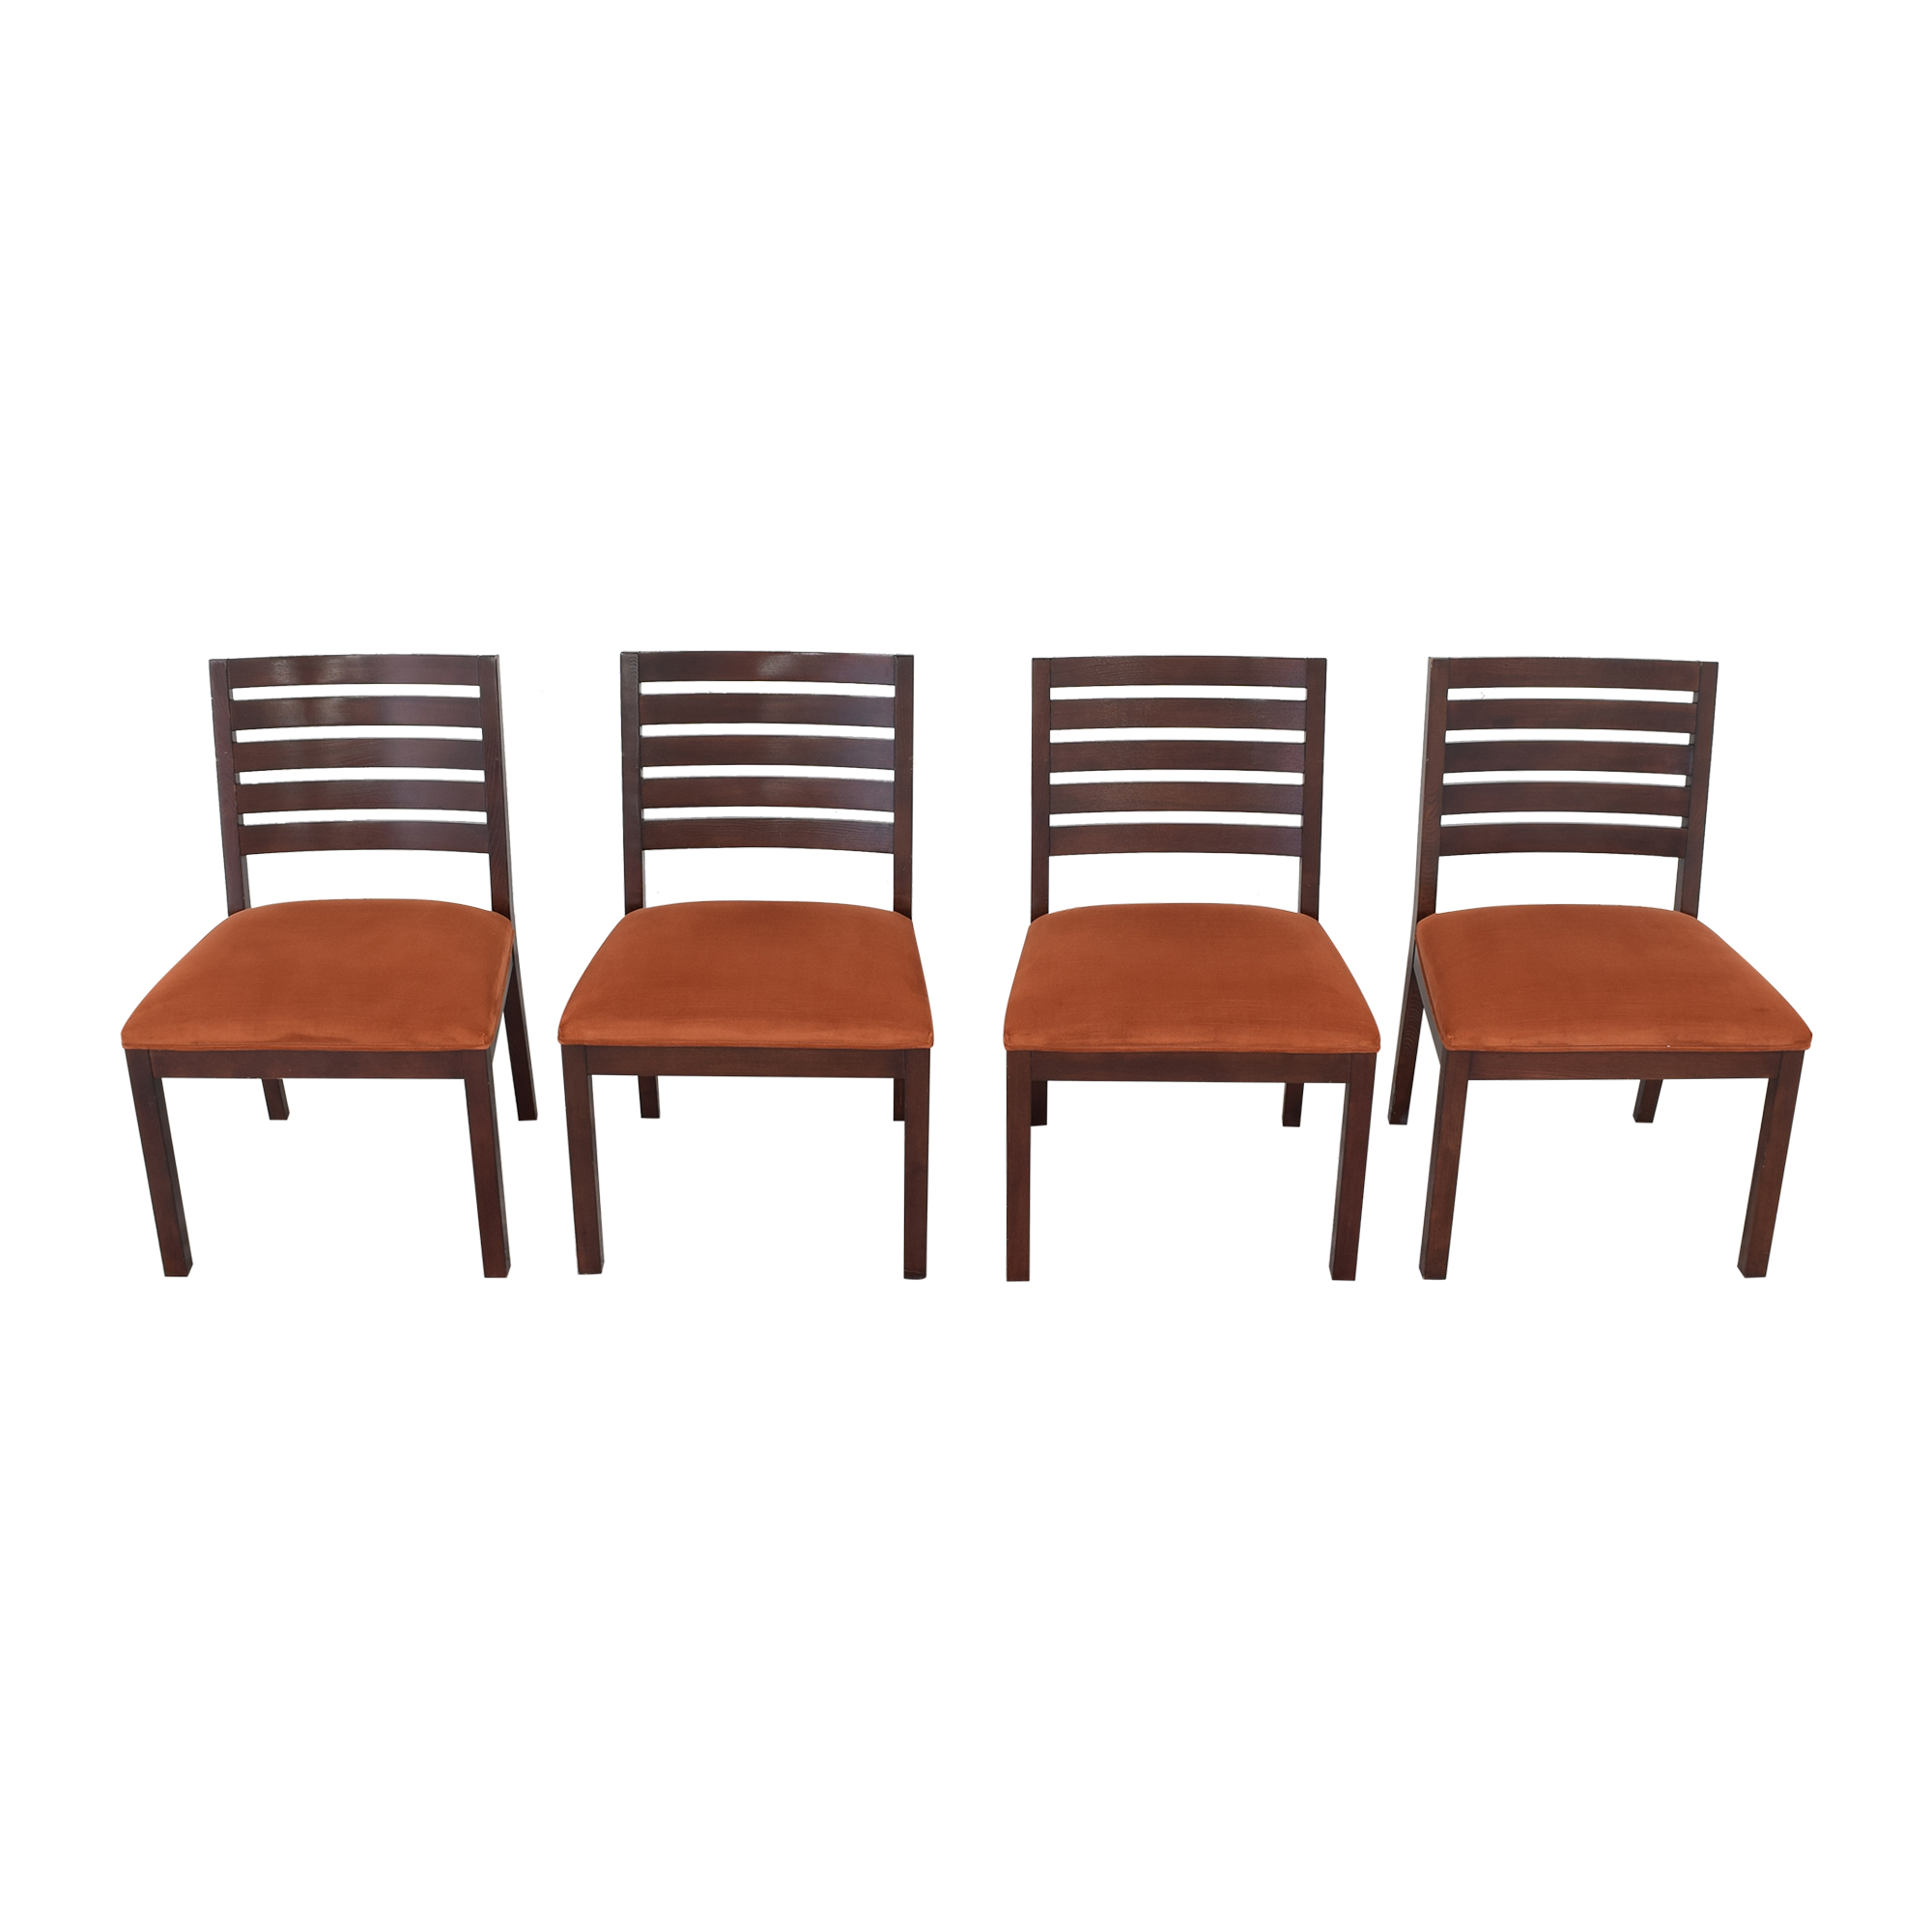 Ethan Allen Ethan Allen Upholstered Dining Chairs Dining Chairs